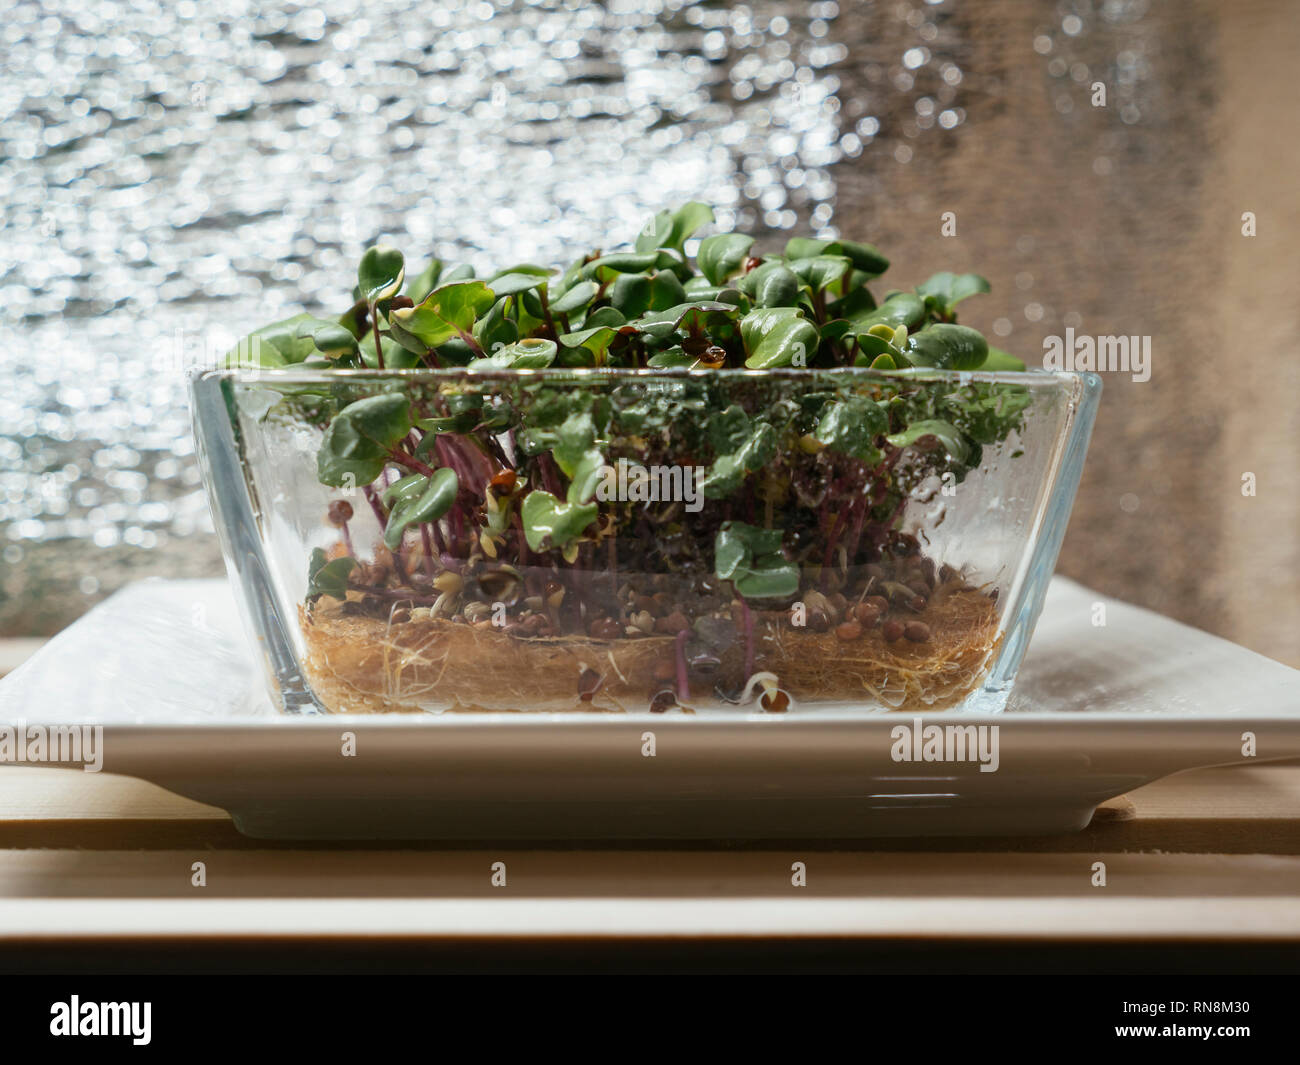 Radish china rose microgreens growing in a glass bowl under a grow light Stock Photo